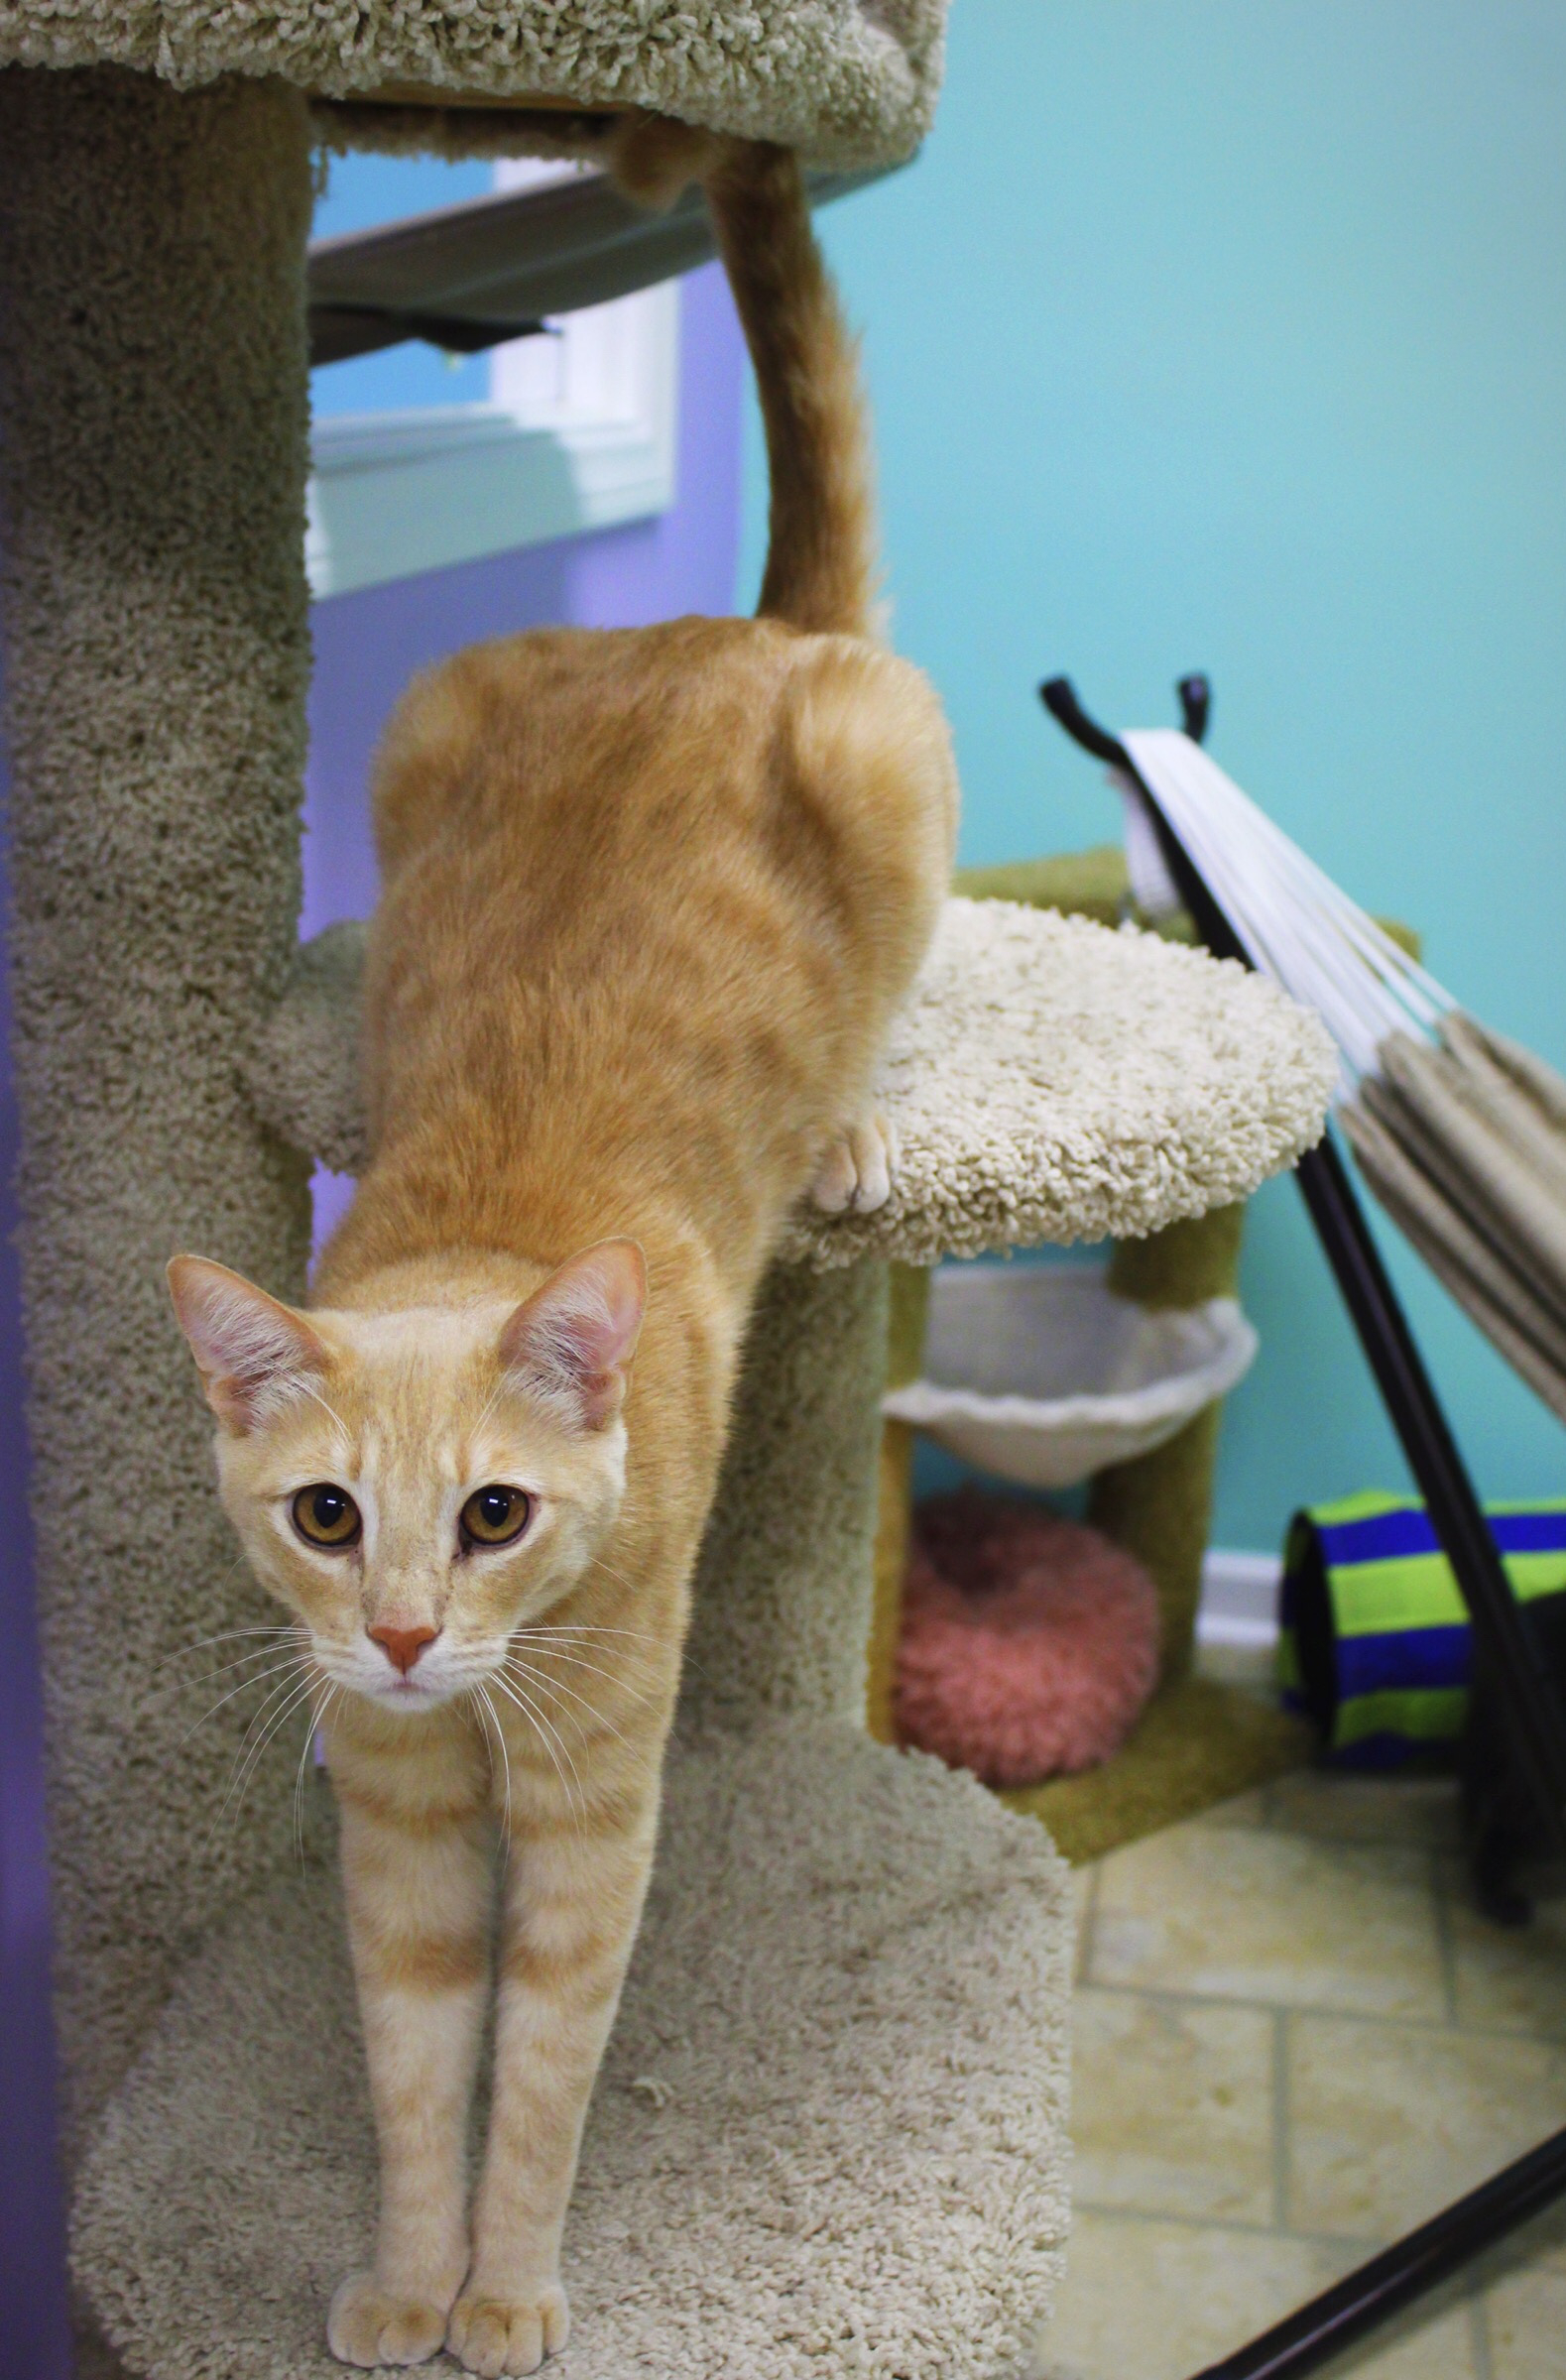 Kitten at the Cat Cafe: My Experience Corralling Cats and Pampering Paws post thumbnail